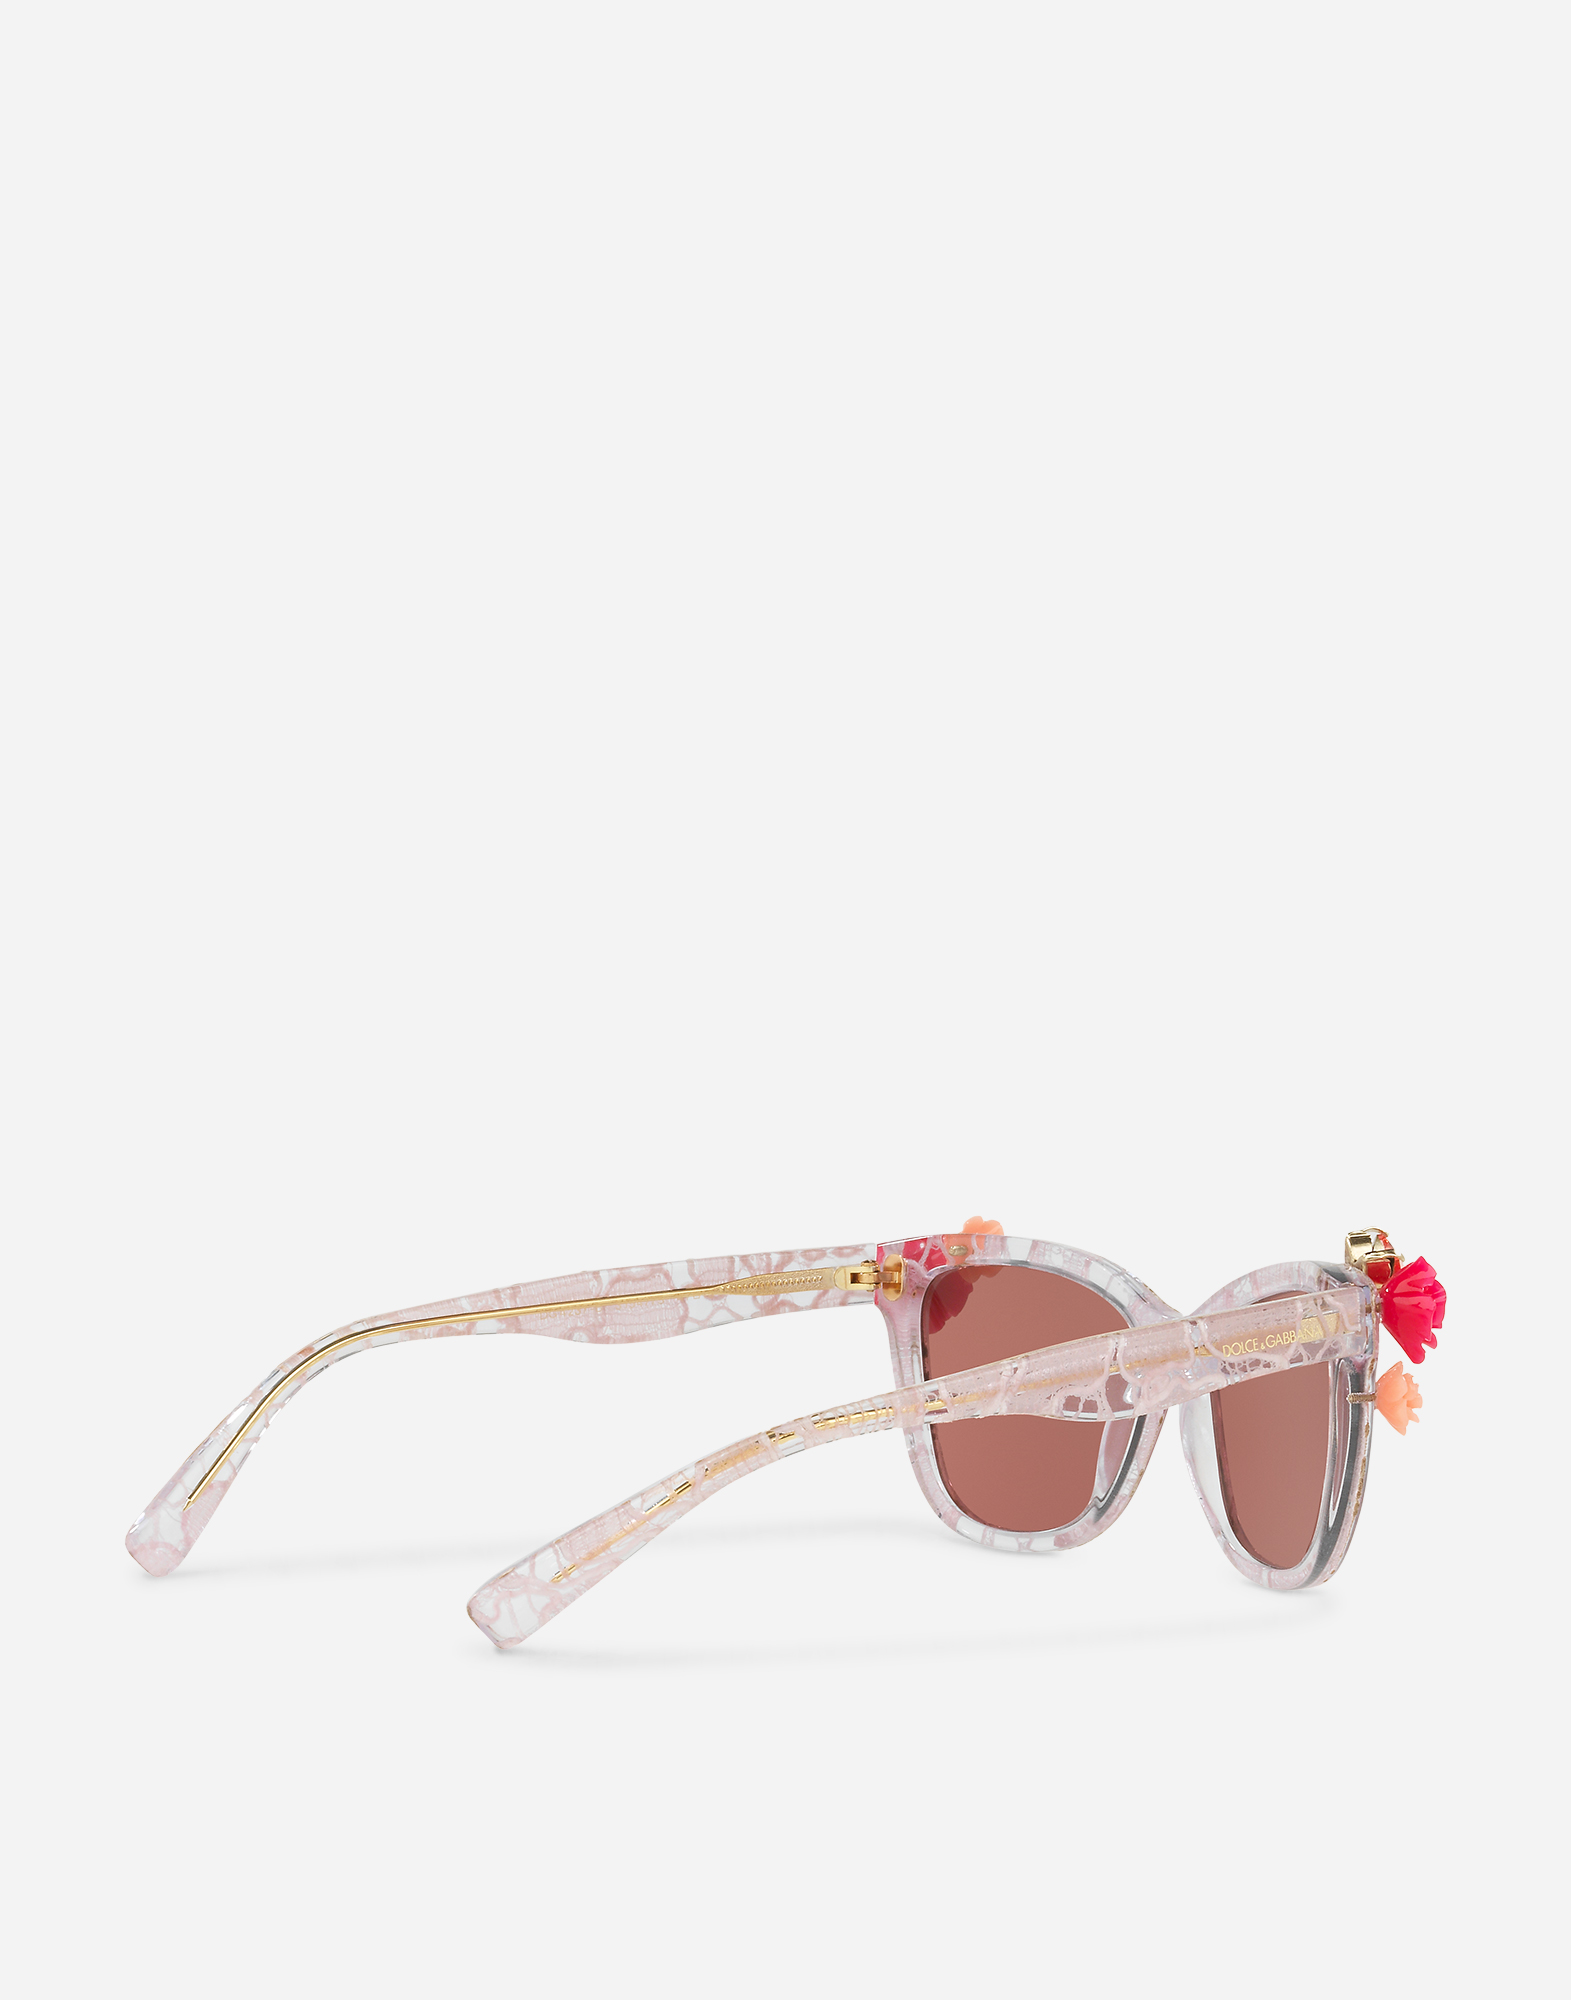 Dolce & Gabbana SQUARE SUNGLASSES WITH APPLIQUÉ